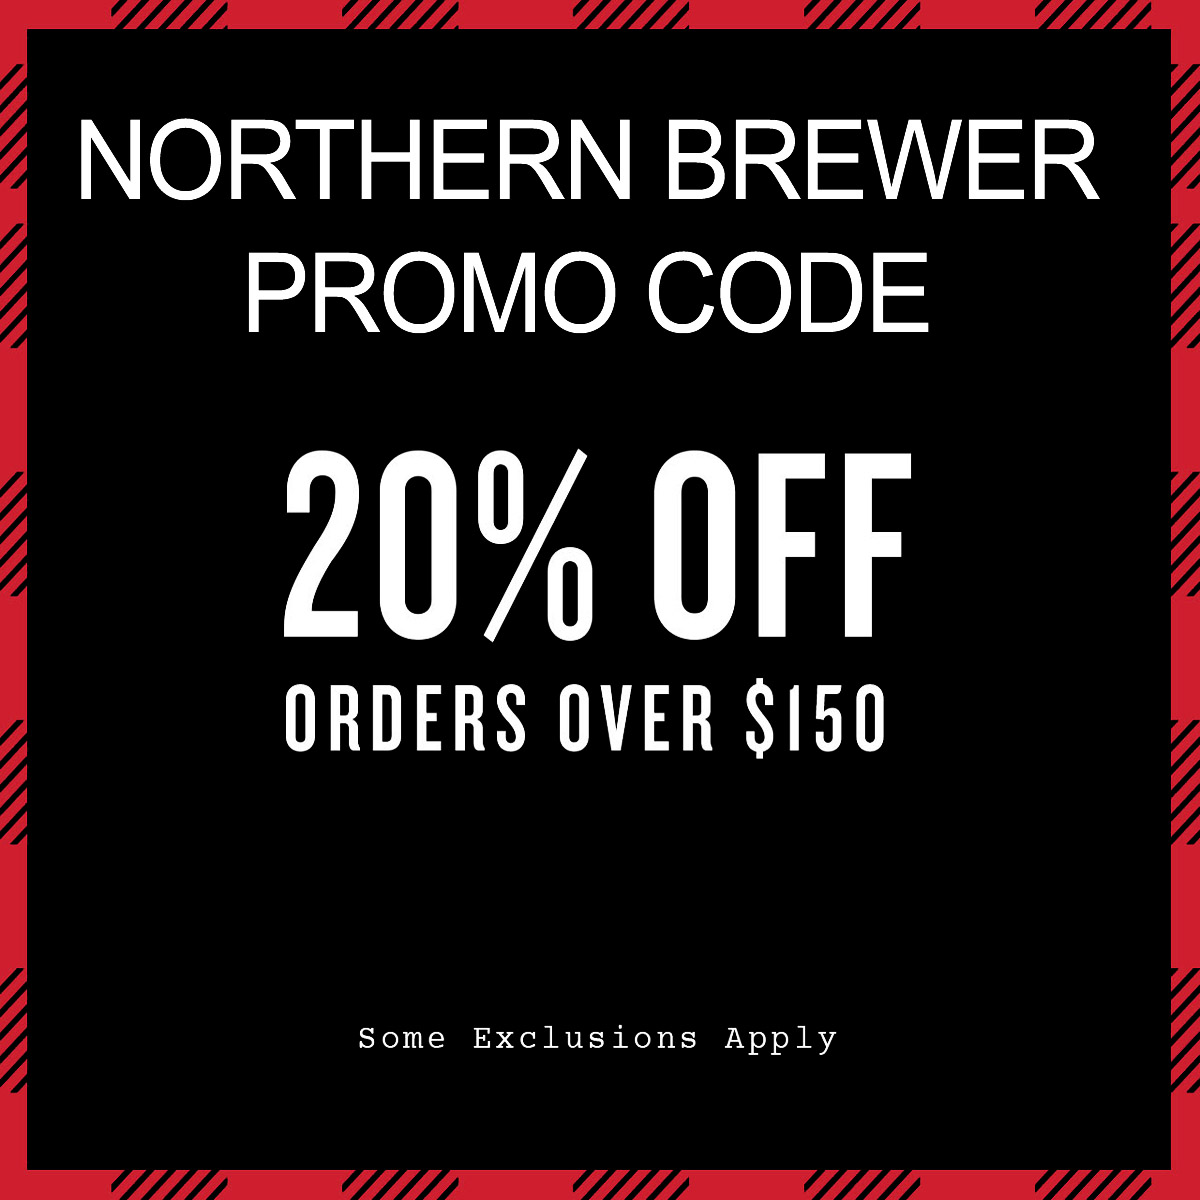 Home Wine Making Coupon Codes for Save 20% Off On Orders of $150 Promo Code for Northern Brewer Promo Code for November Coupon Code